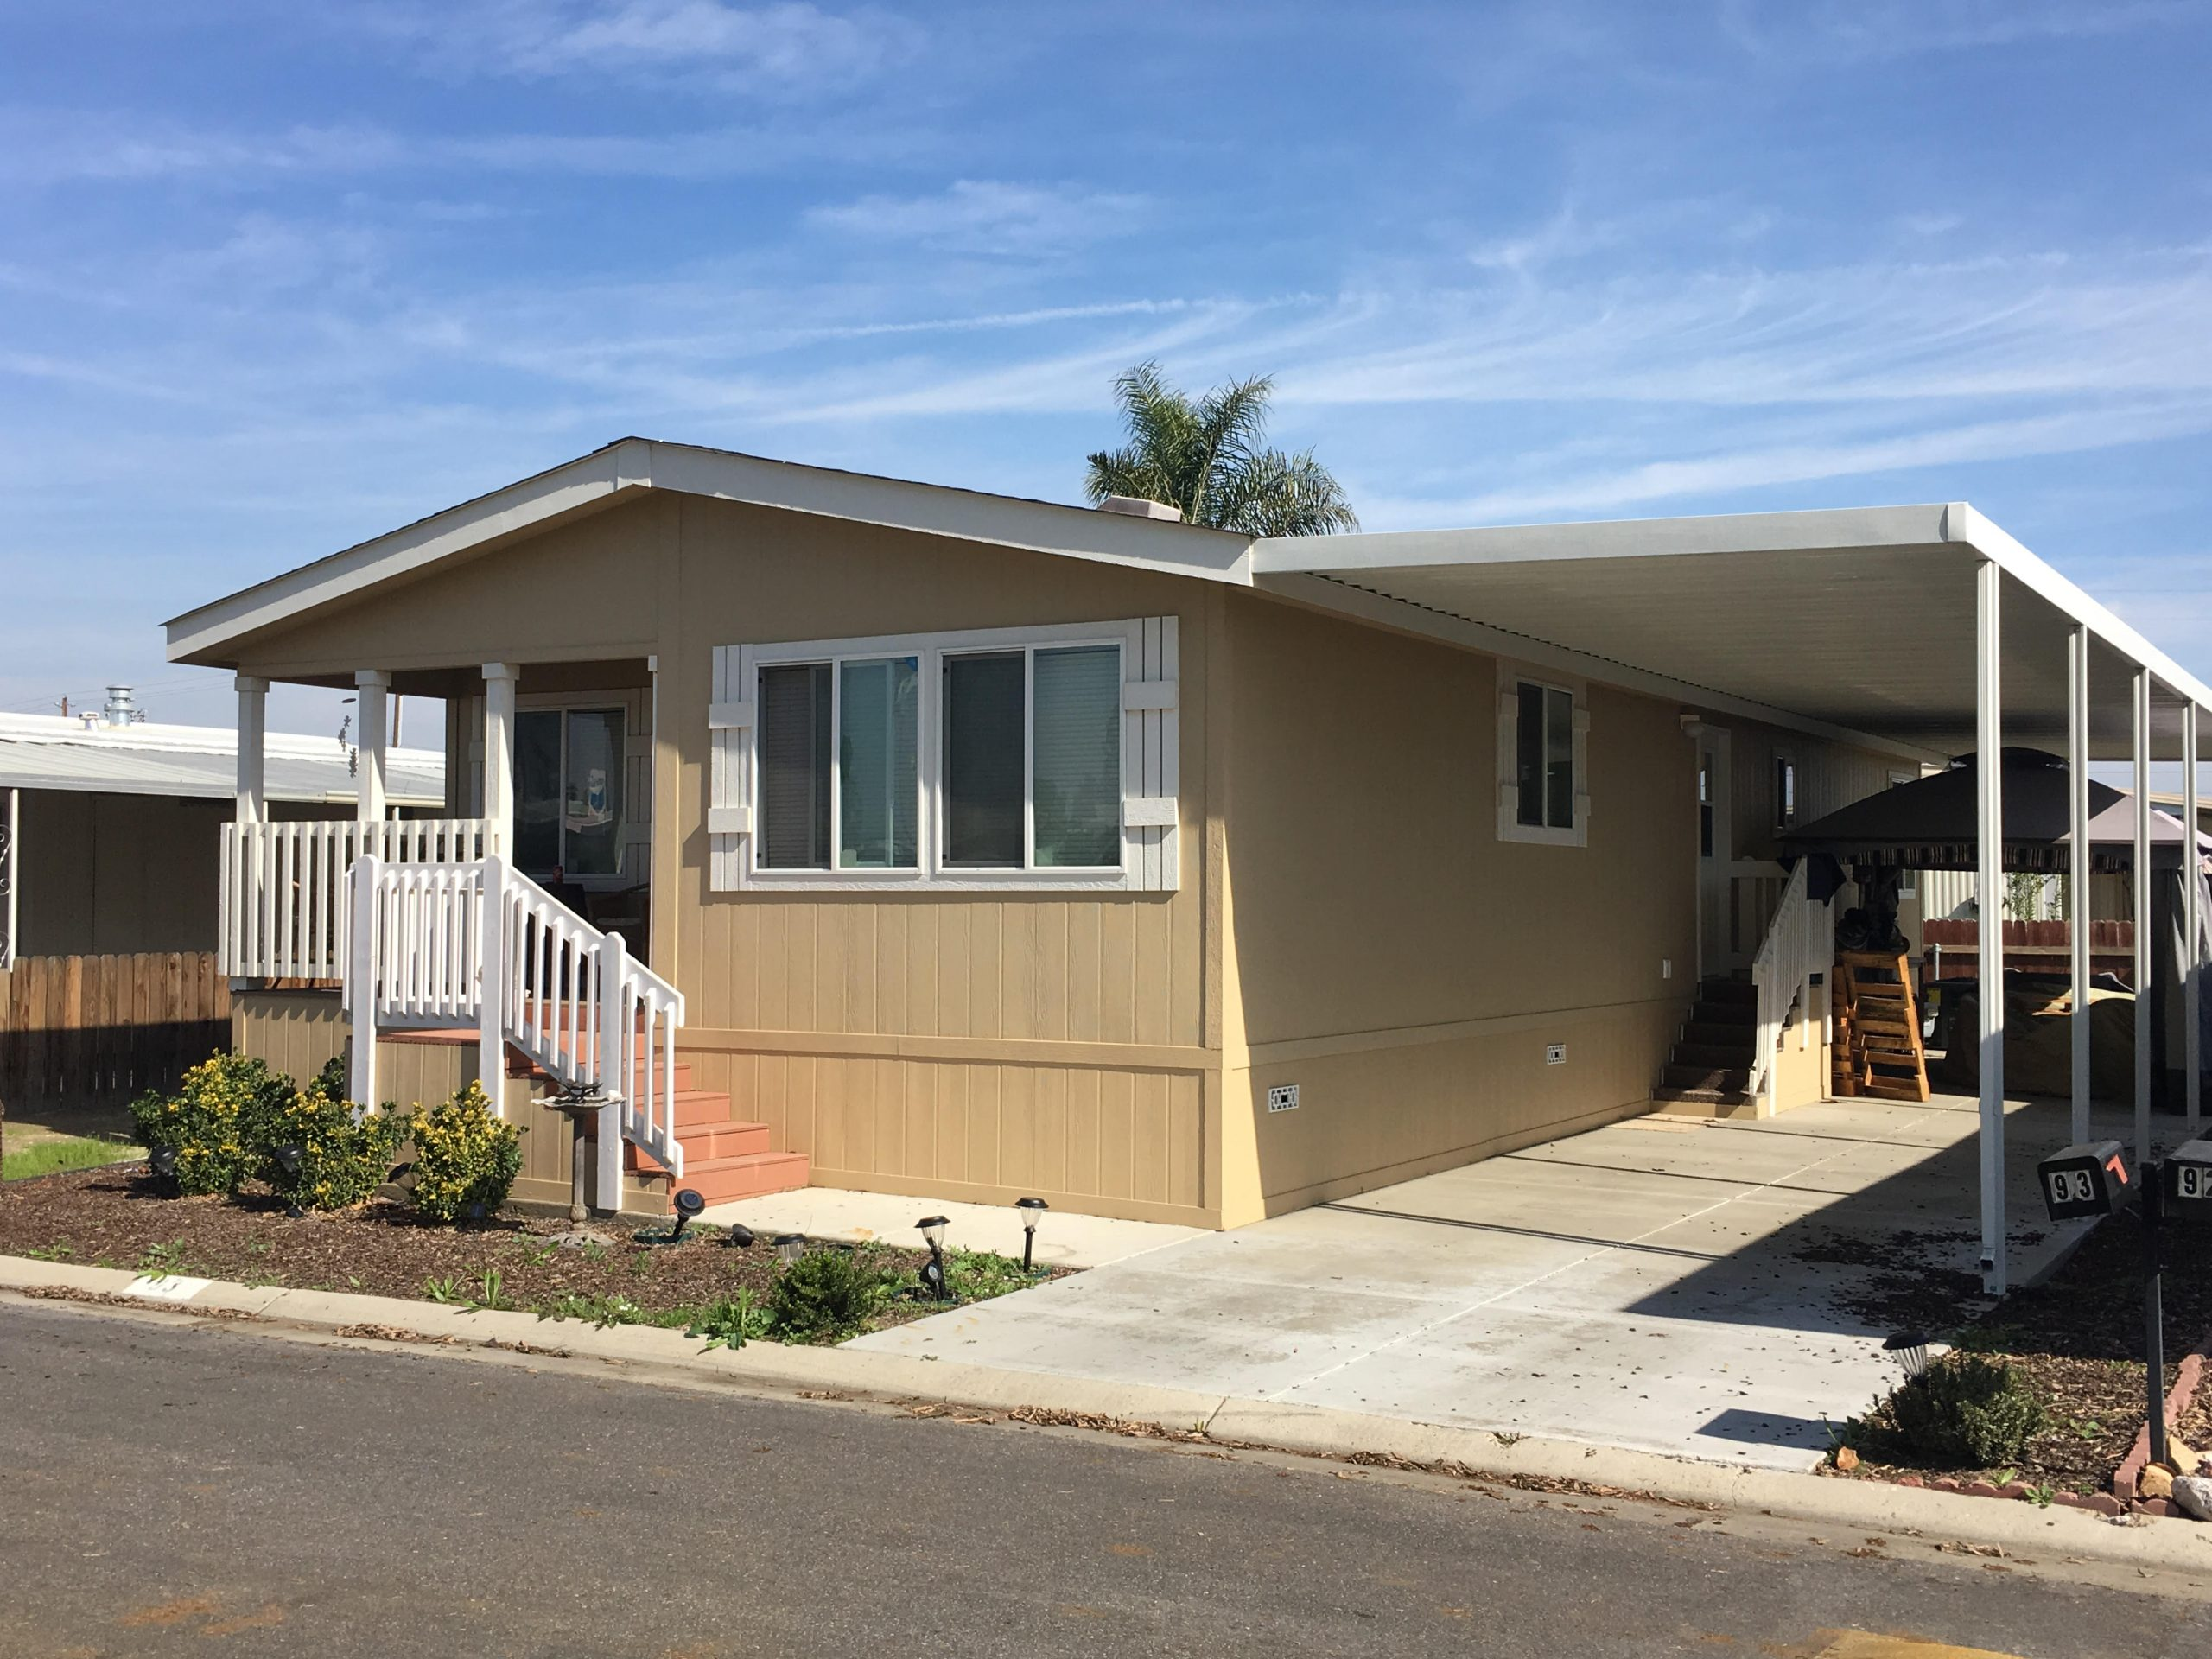 Mobile home double wide house model in Smoke Tree Mobile Estates